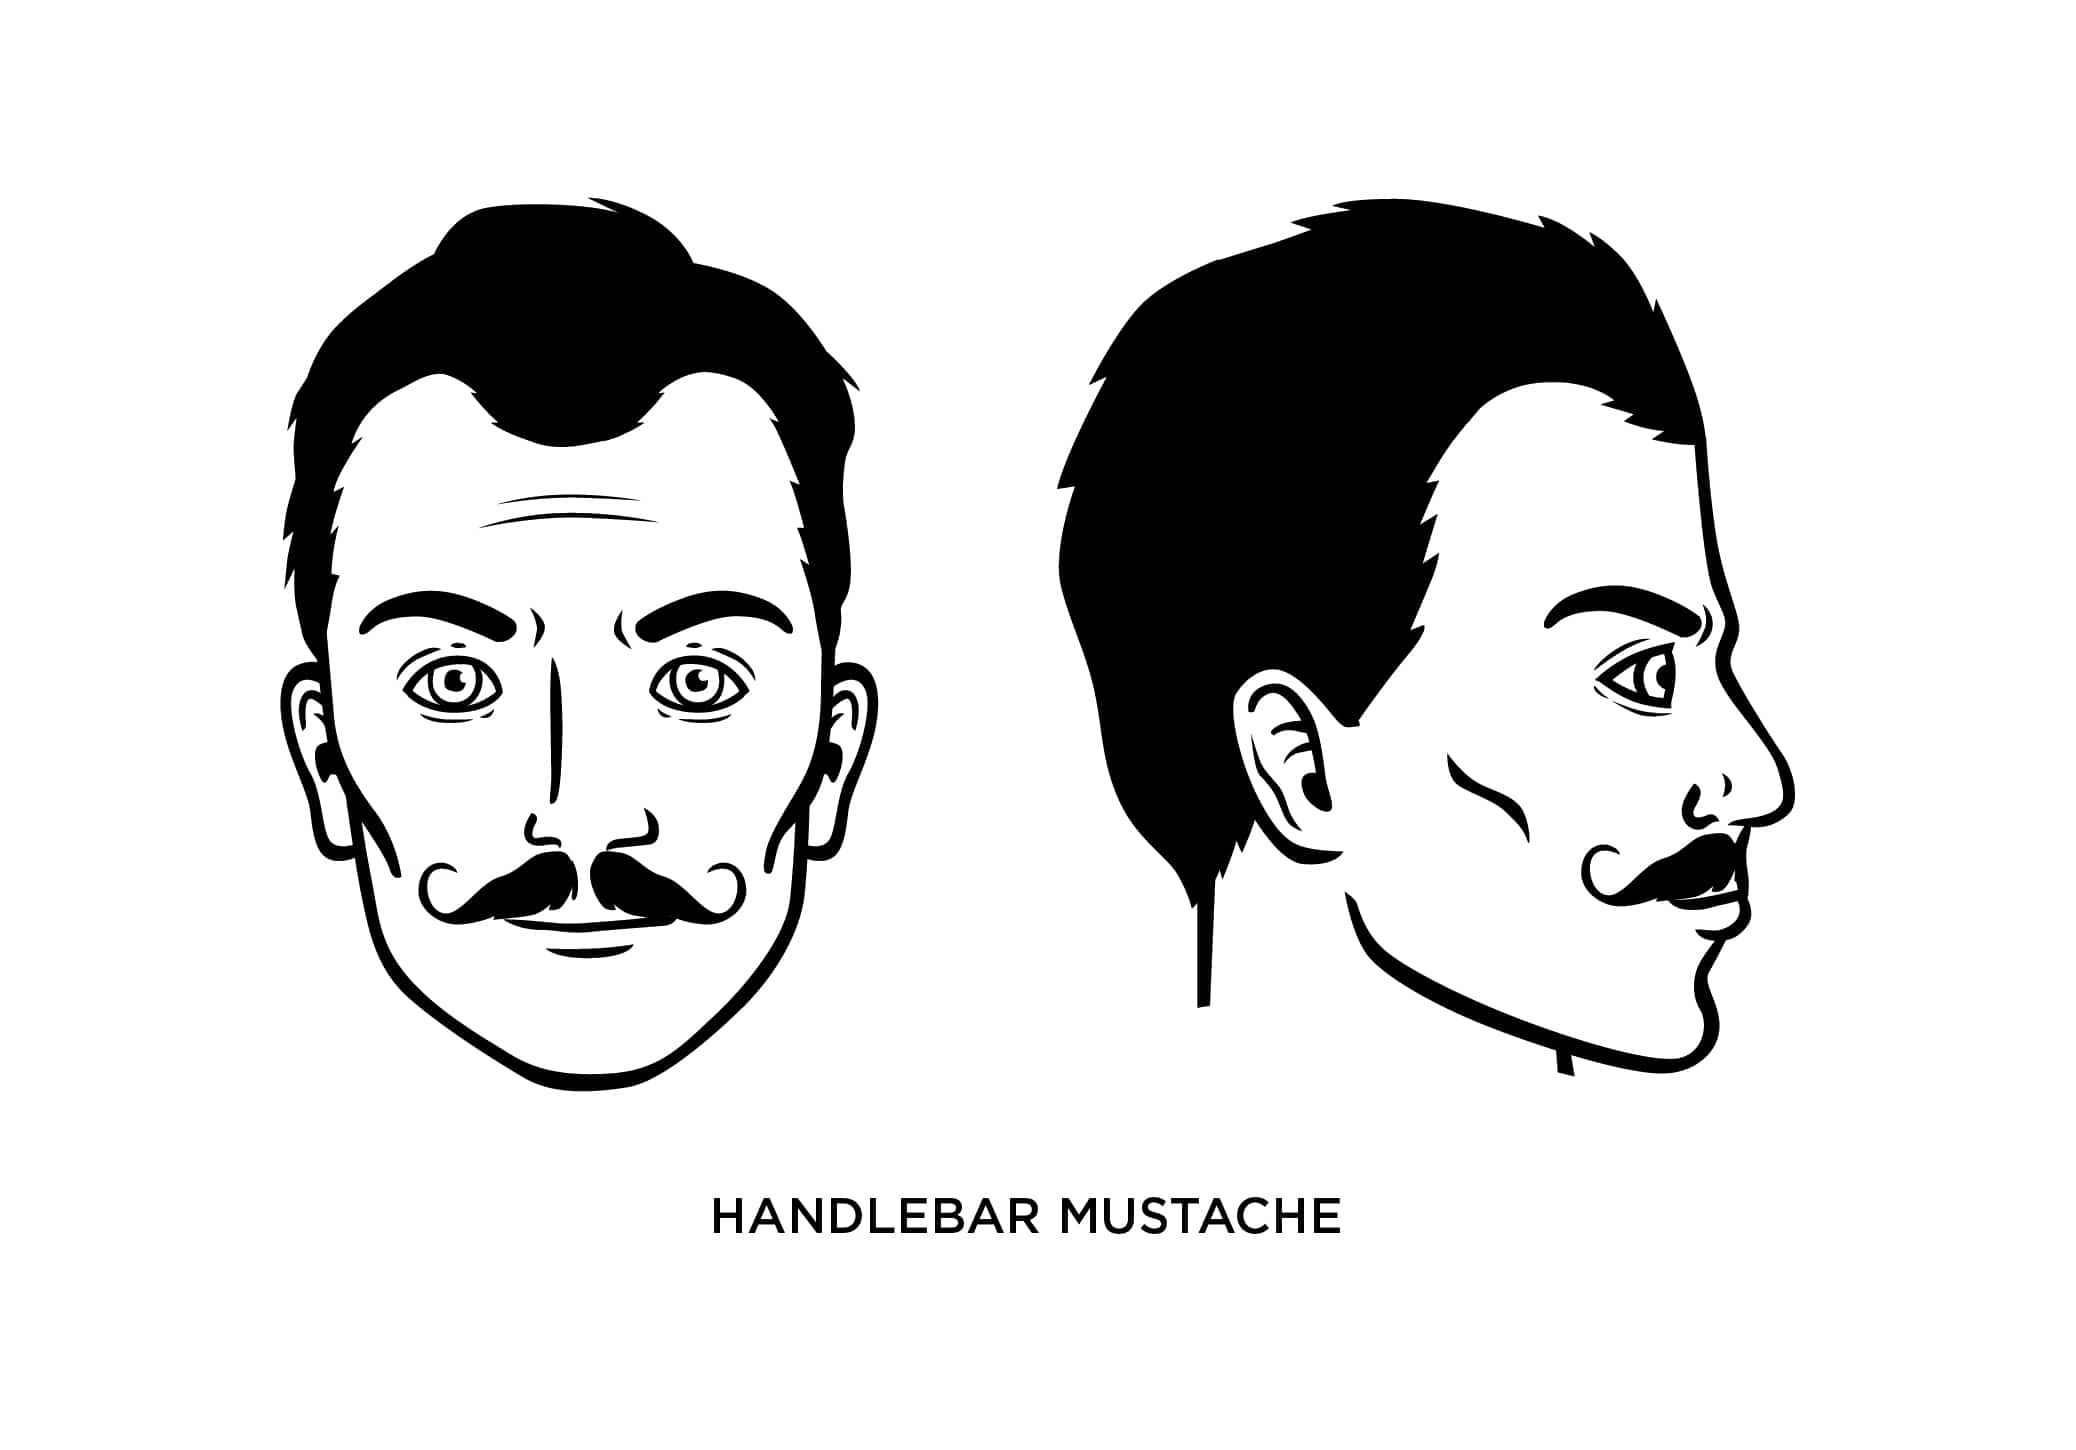 The Handlebar Mustache: How to Grow, Guide, Examples, and